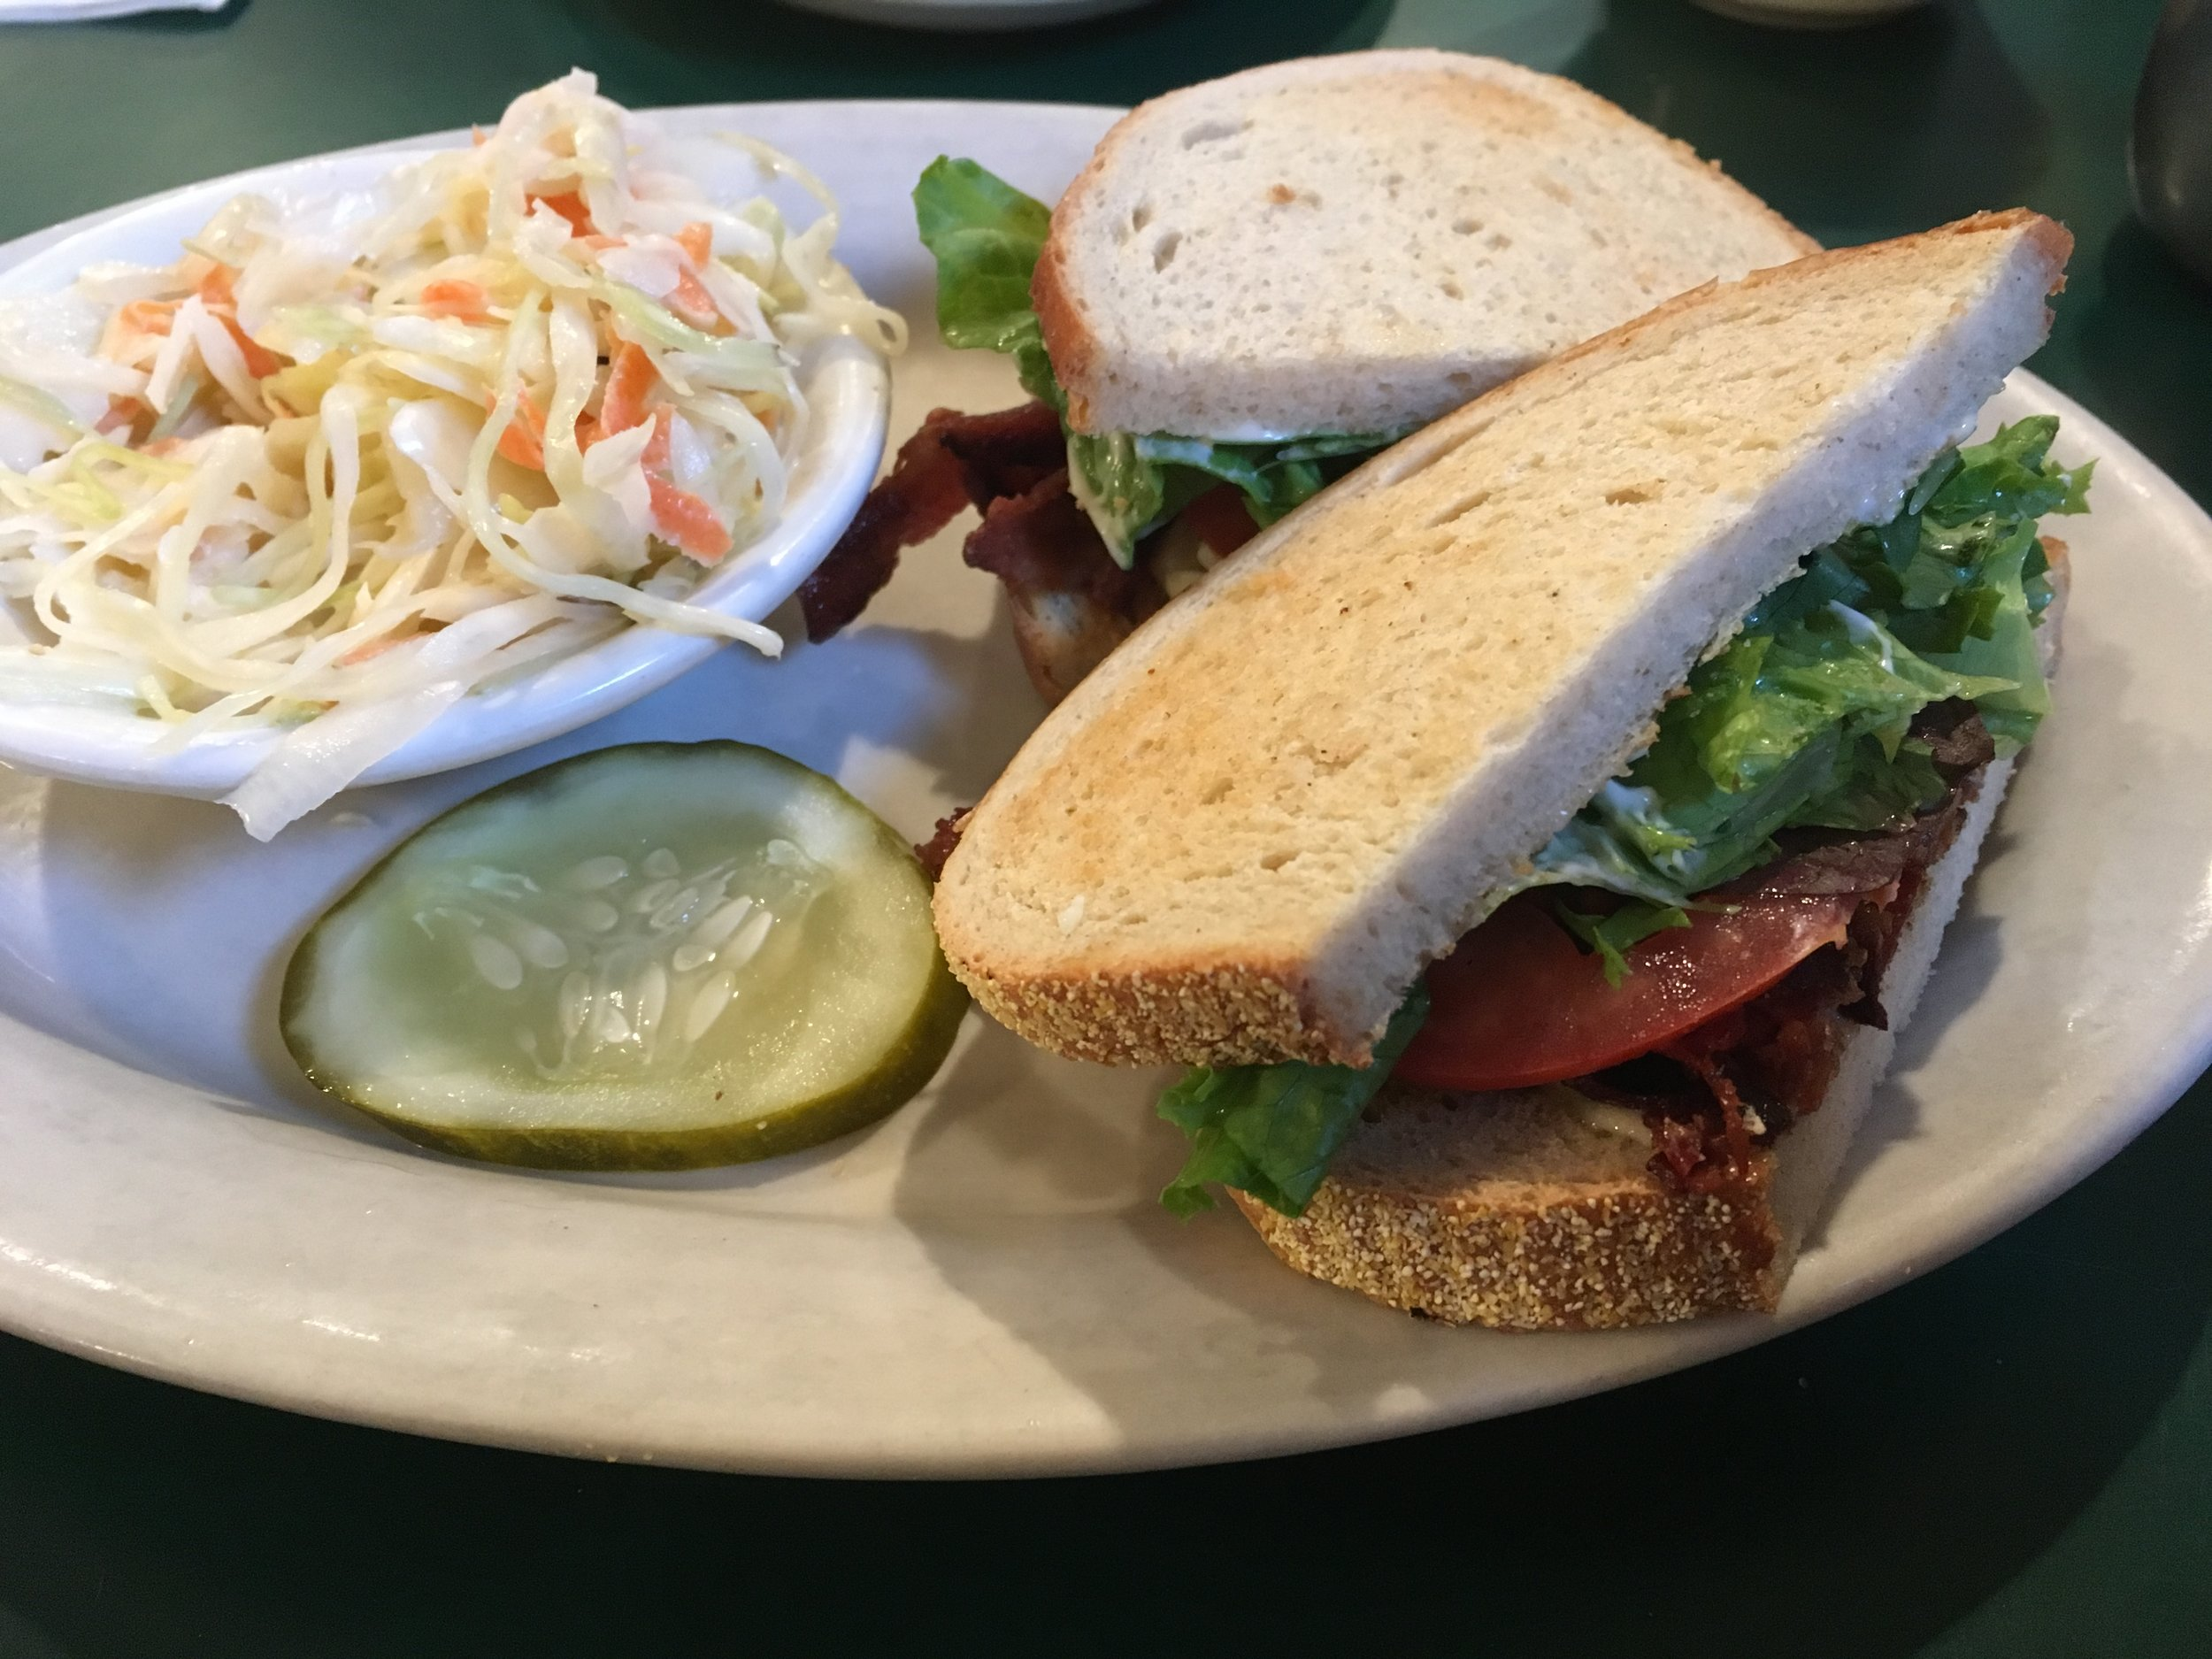 Can't go wrong with their BLT